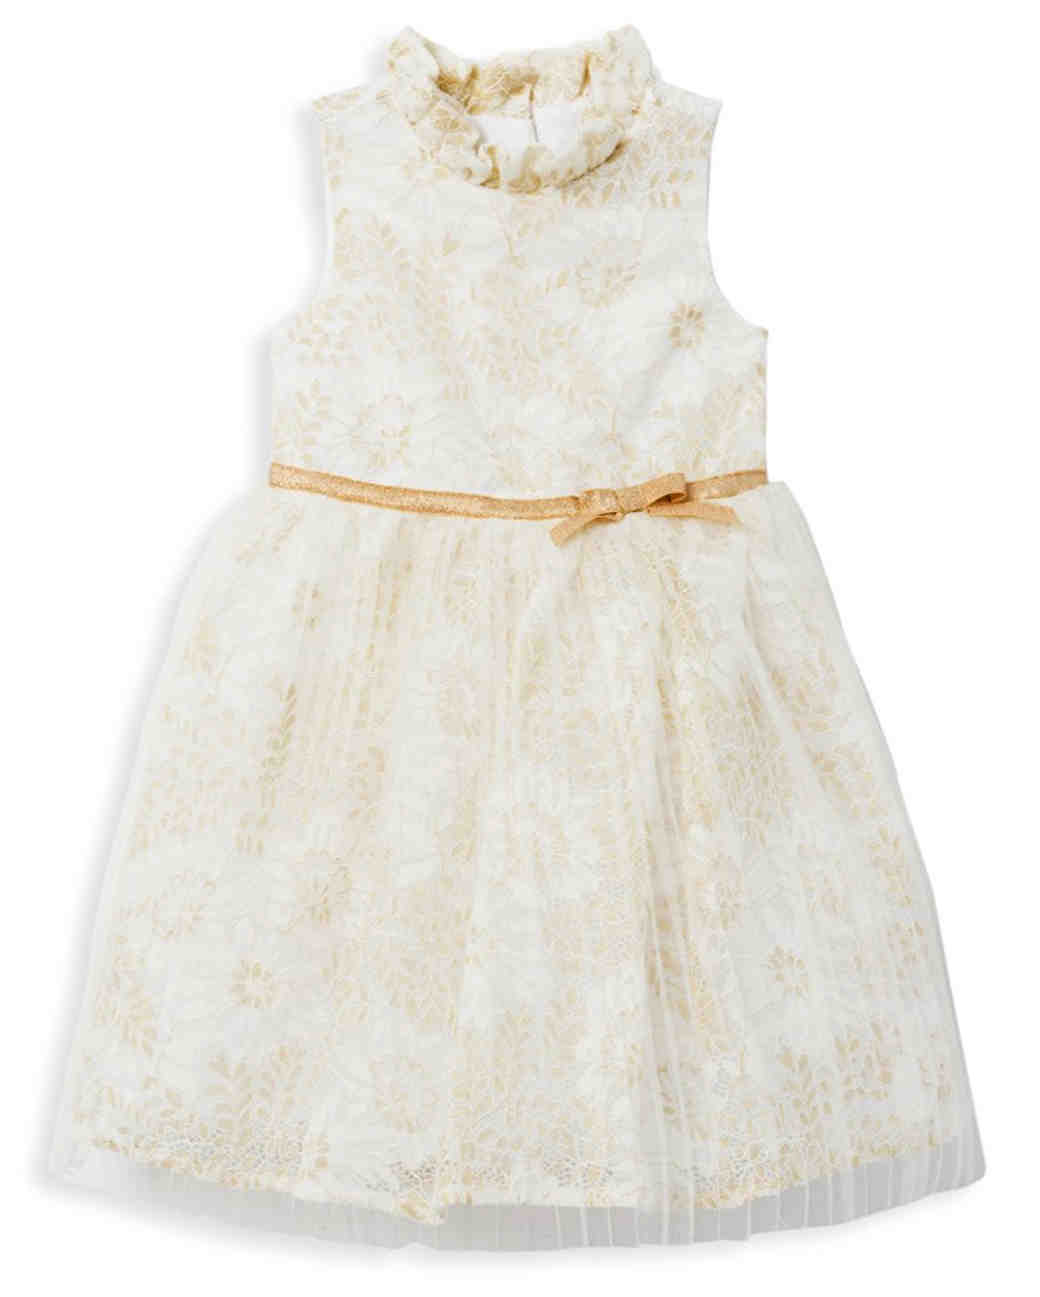 aa00575295f The Most Adorable Flower Girl Dresses for a Winter Wedding